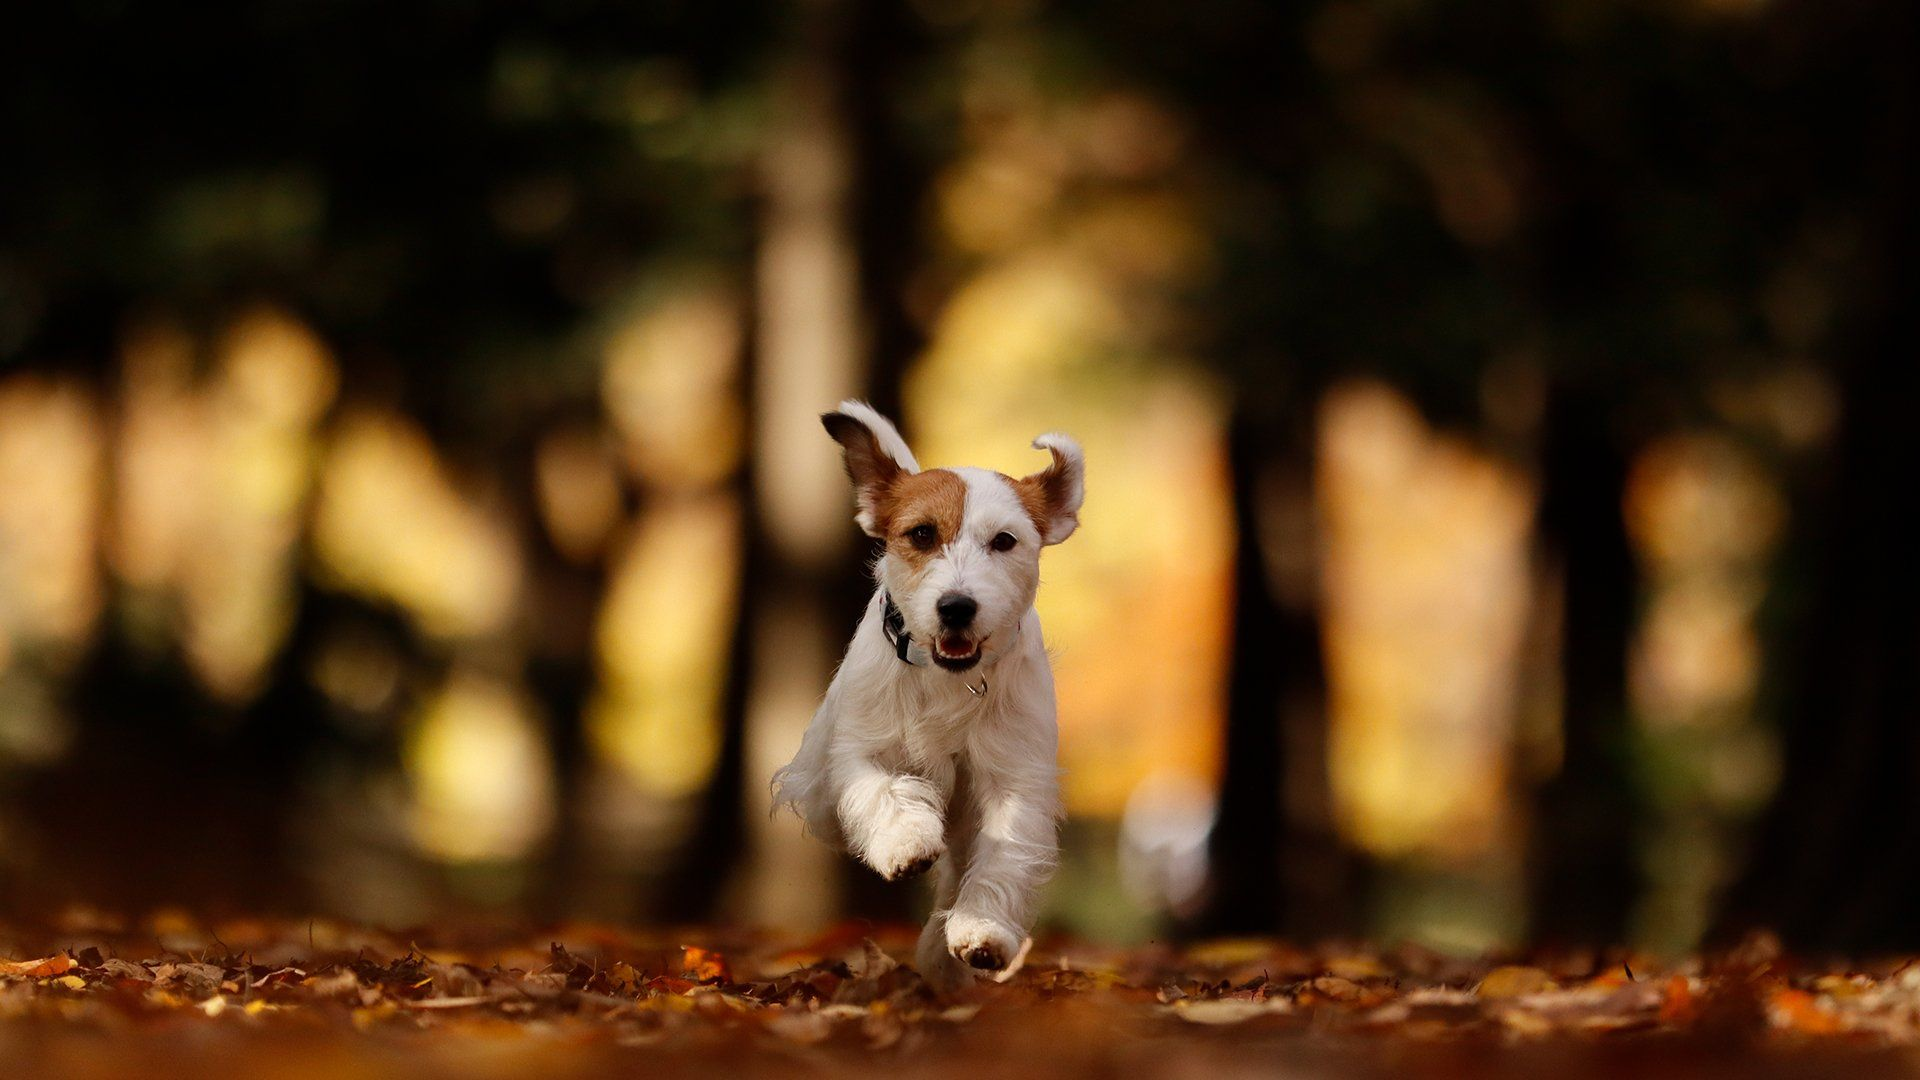 A small dog runs towards the camera on a path covered with leaves.